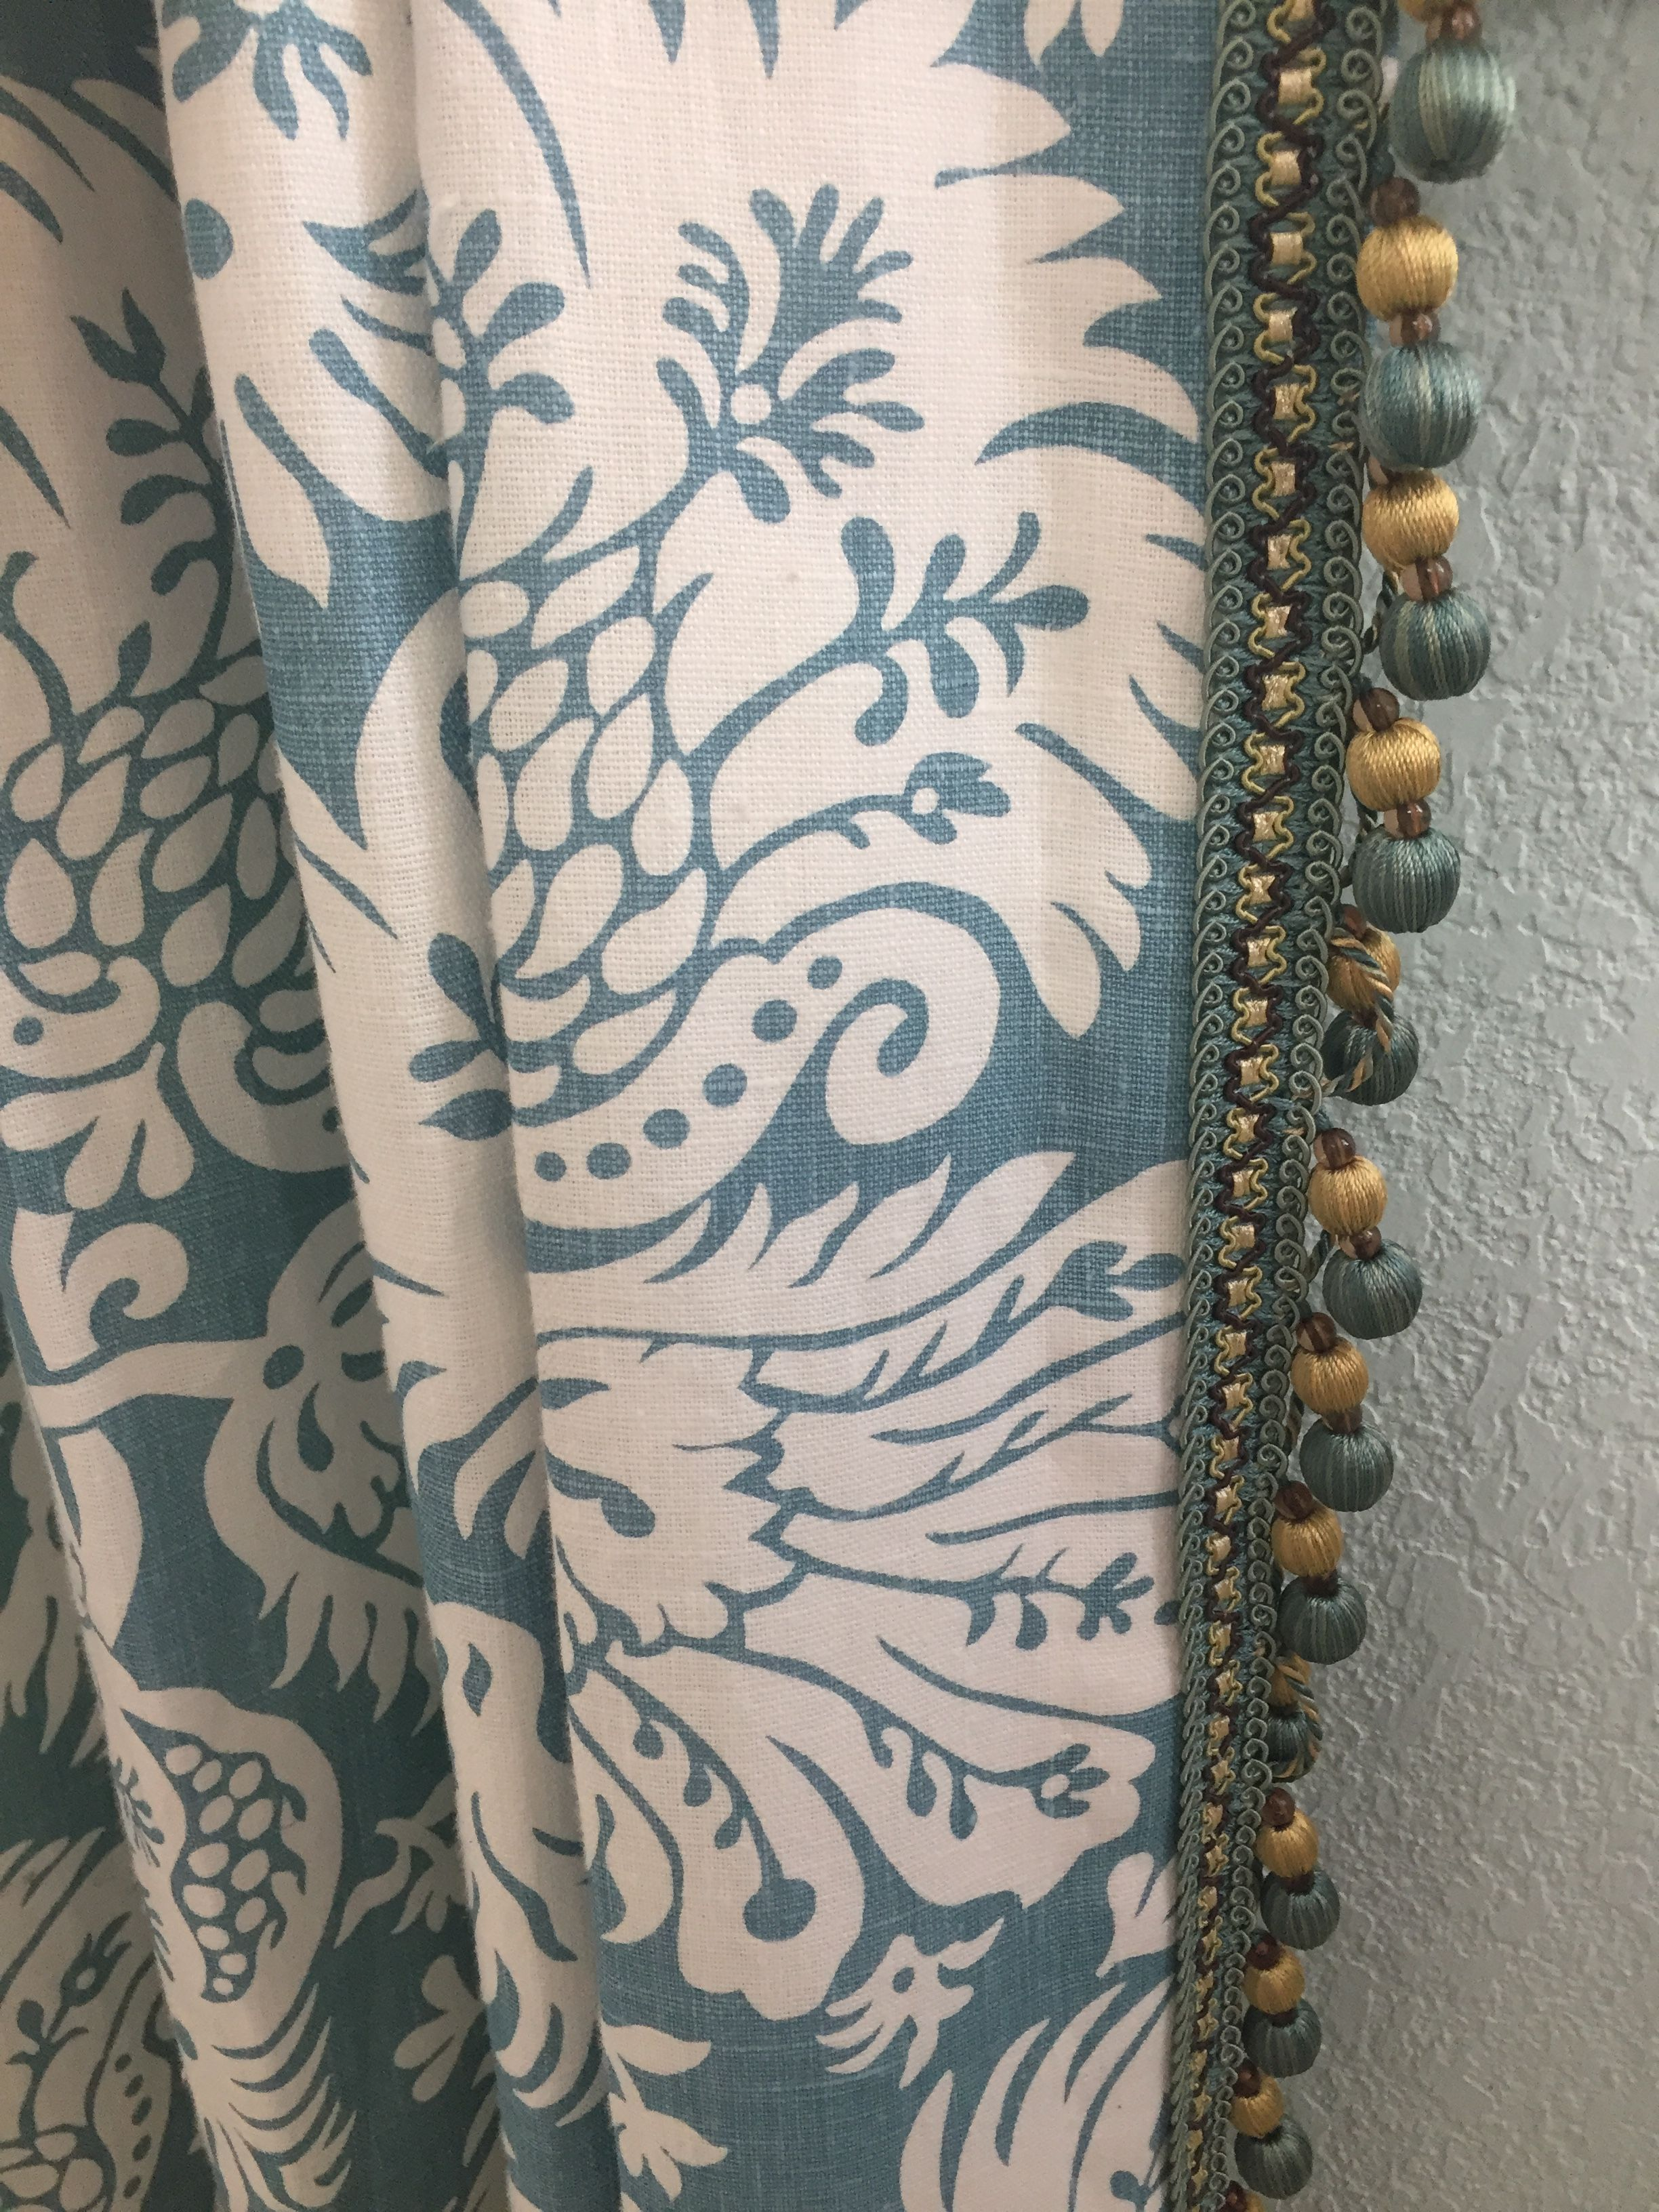 Pinched Pleat drapery panel with beaded trim